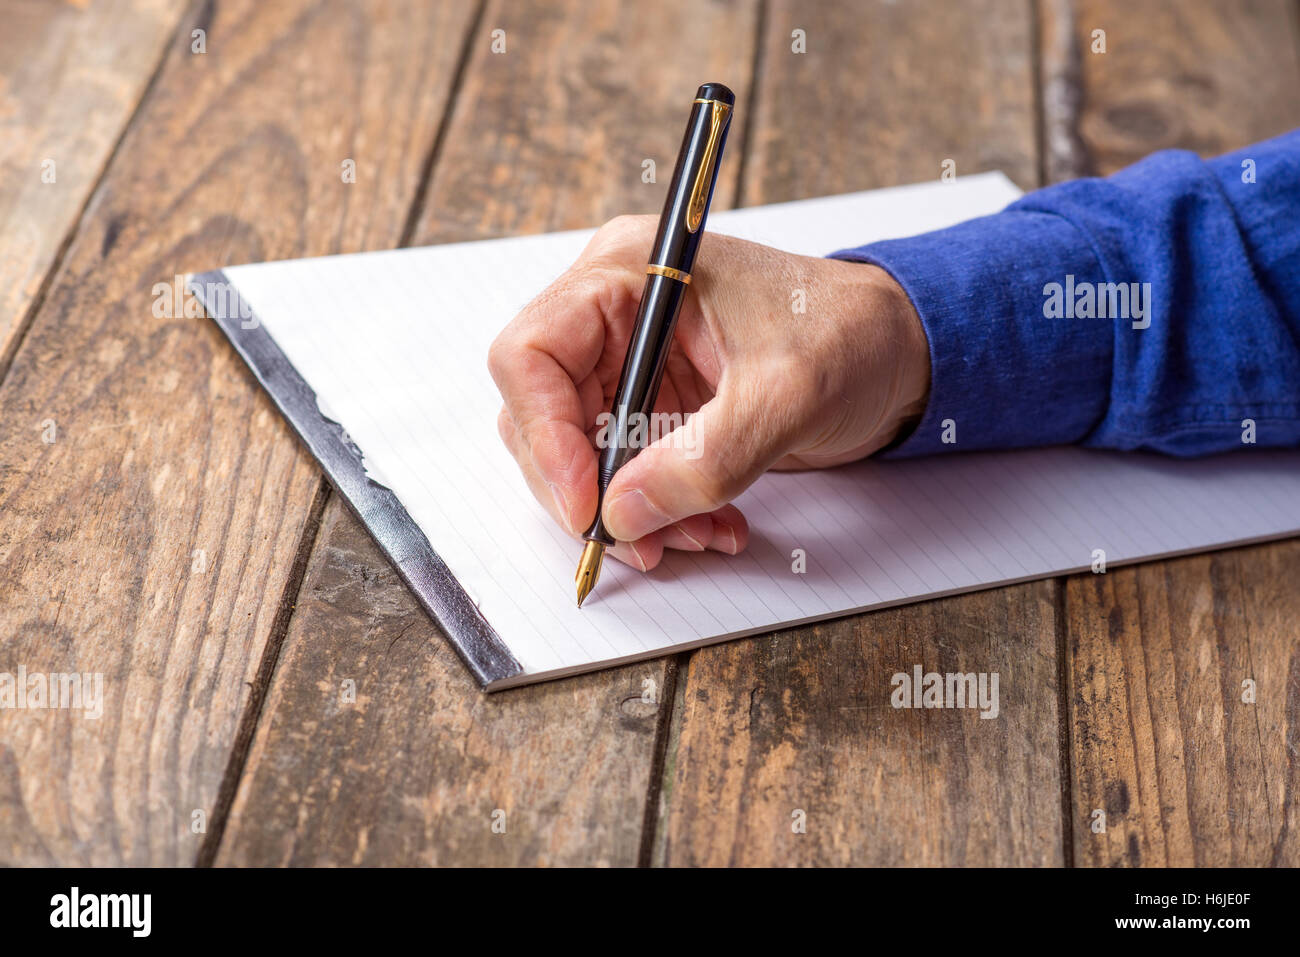 man's hand writing with a fountain pen. wooden background Stock Photo